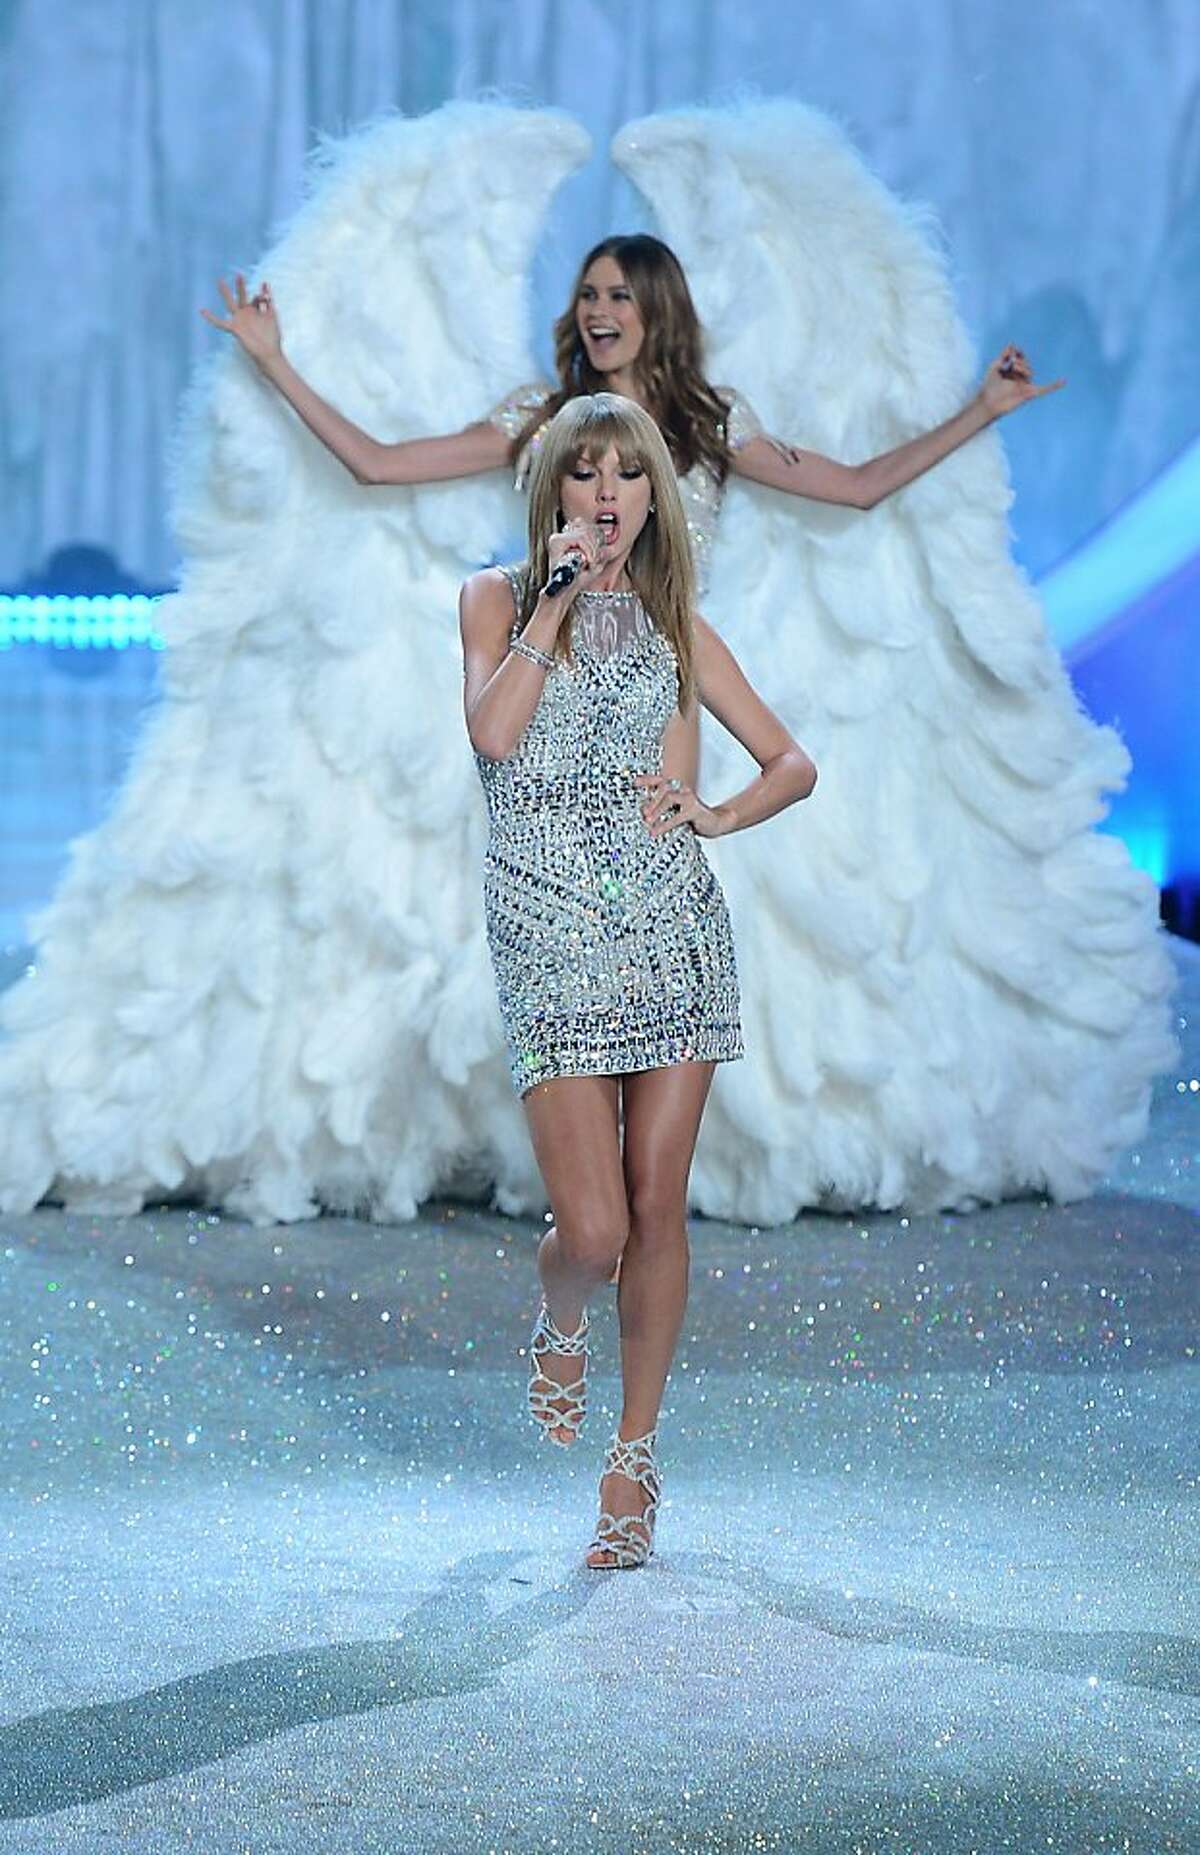 Singer Taylor Swift performs during the 2013 Victoria's Secret Fashion Show at the Lexington Avenue Armory on November 13, 2013 in New York. AFP PHOTO/Emmanuel DunandEMMANUEL DUNAND/AFP/Getty Images